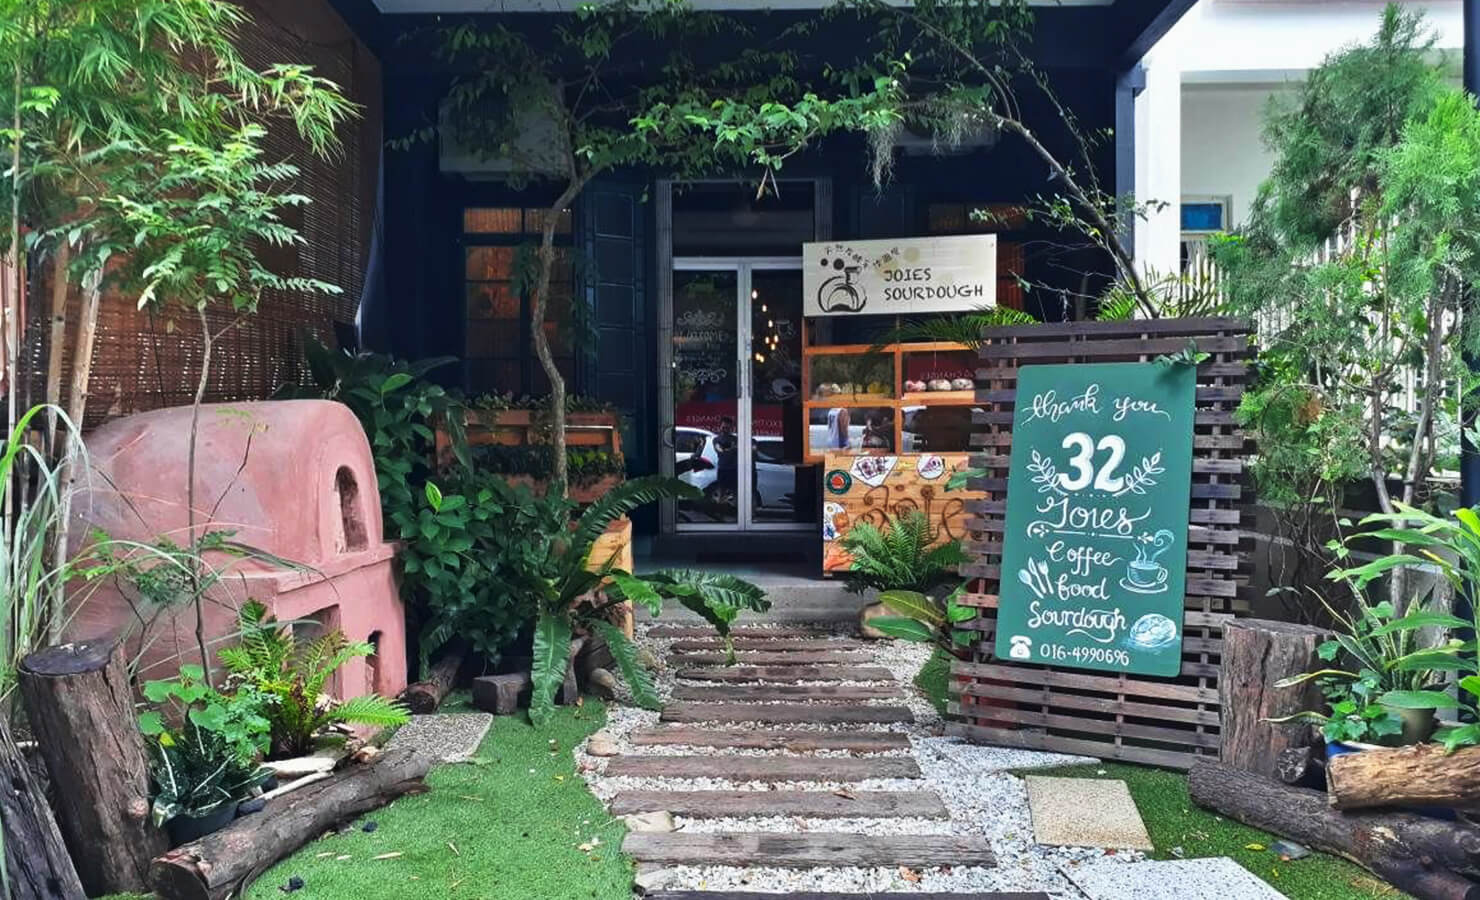 bloomthis-hidden-gems-in-malaysia-03-joies-cafe-penang